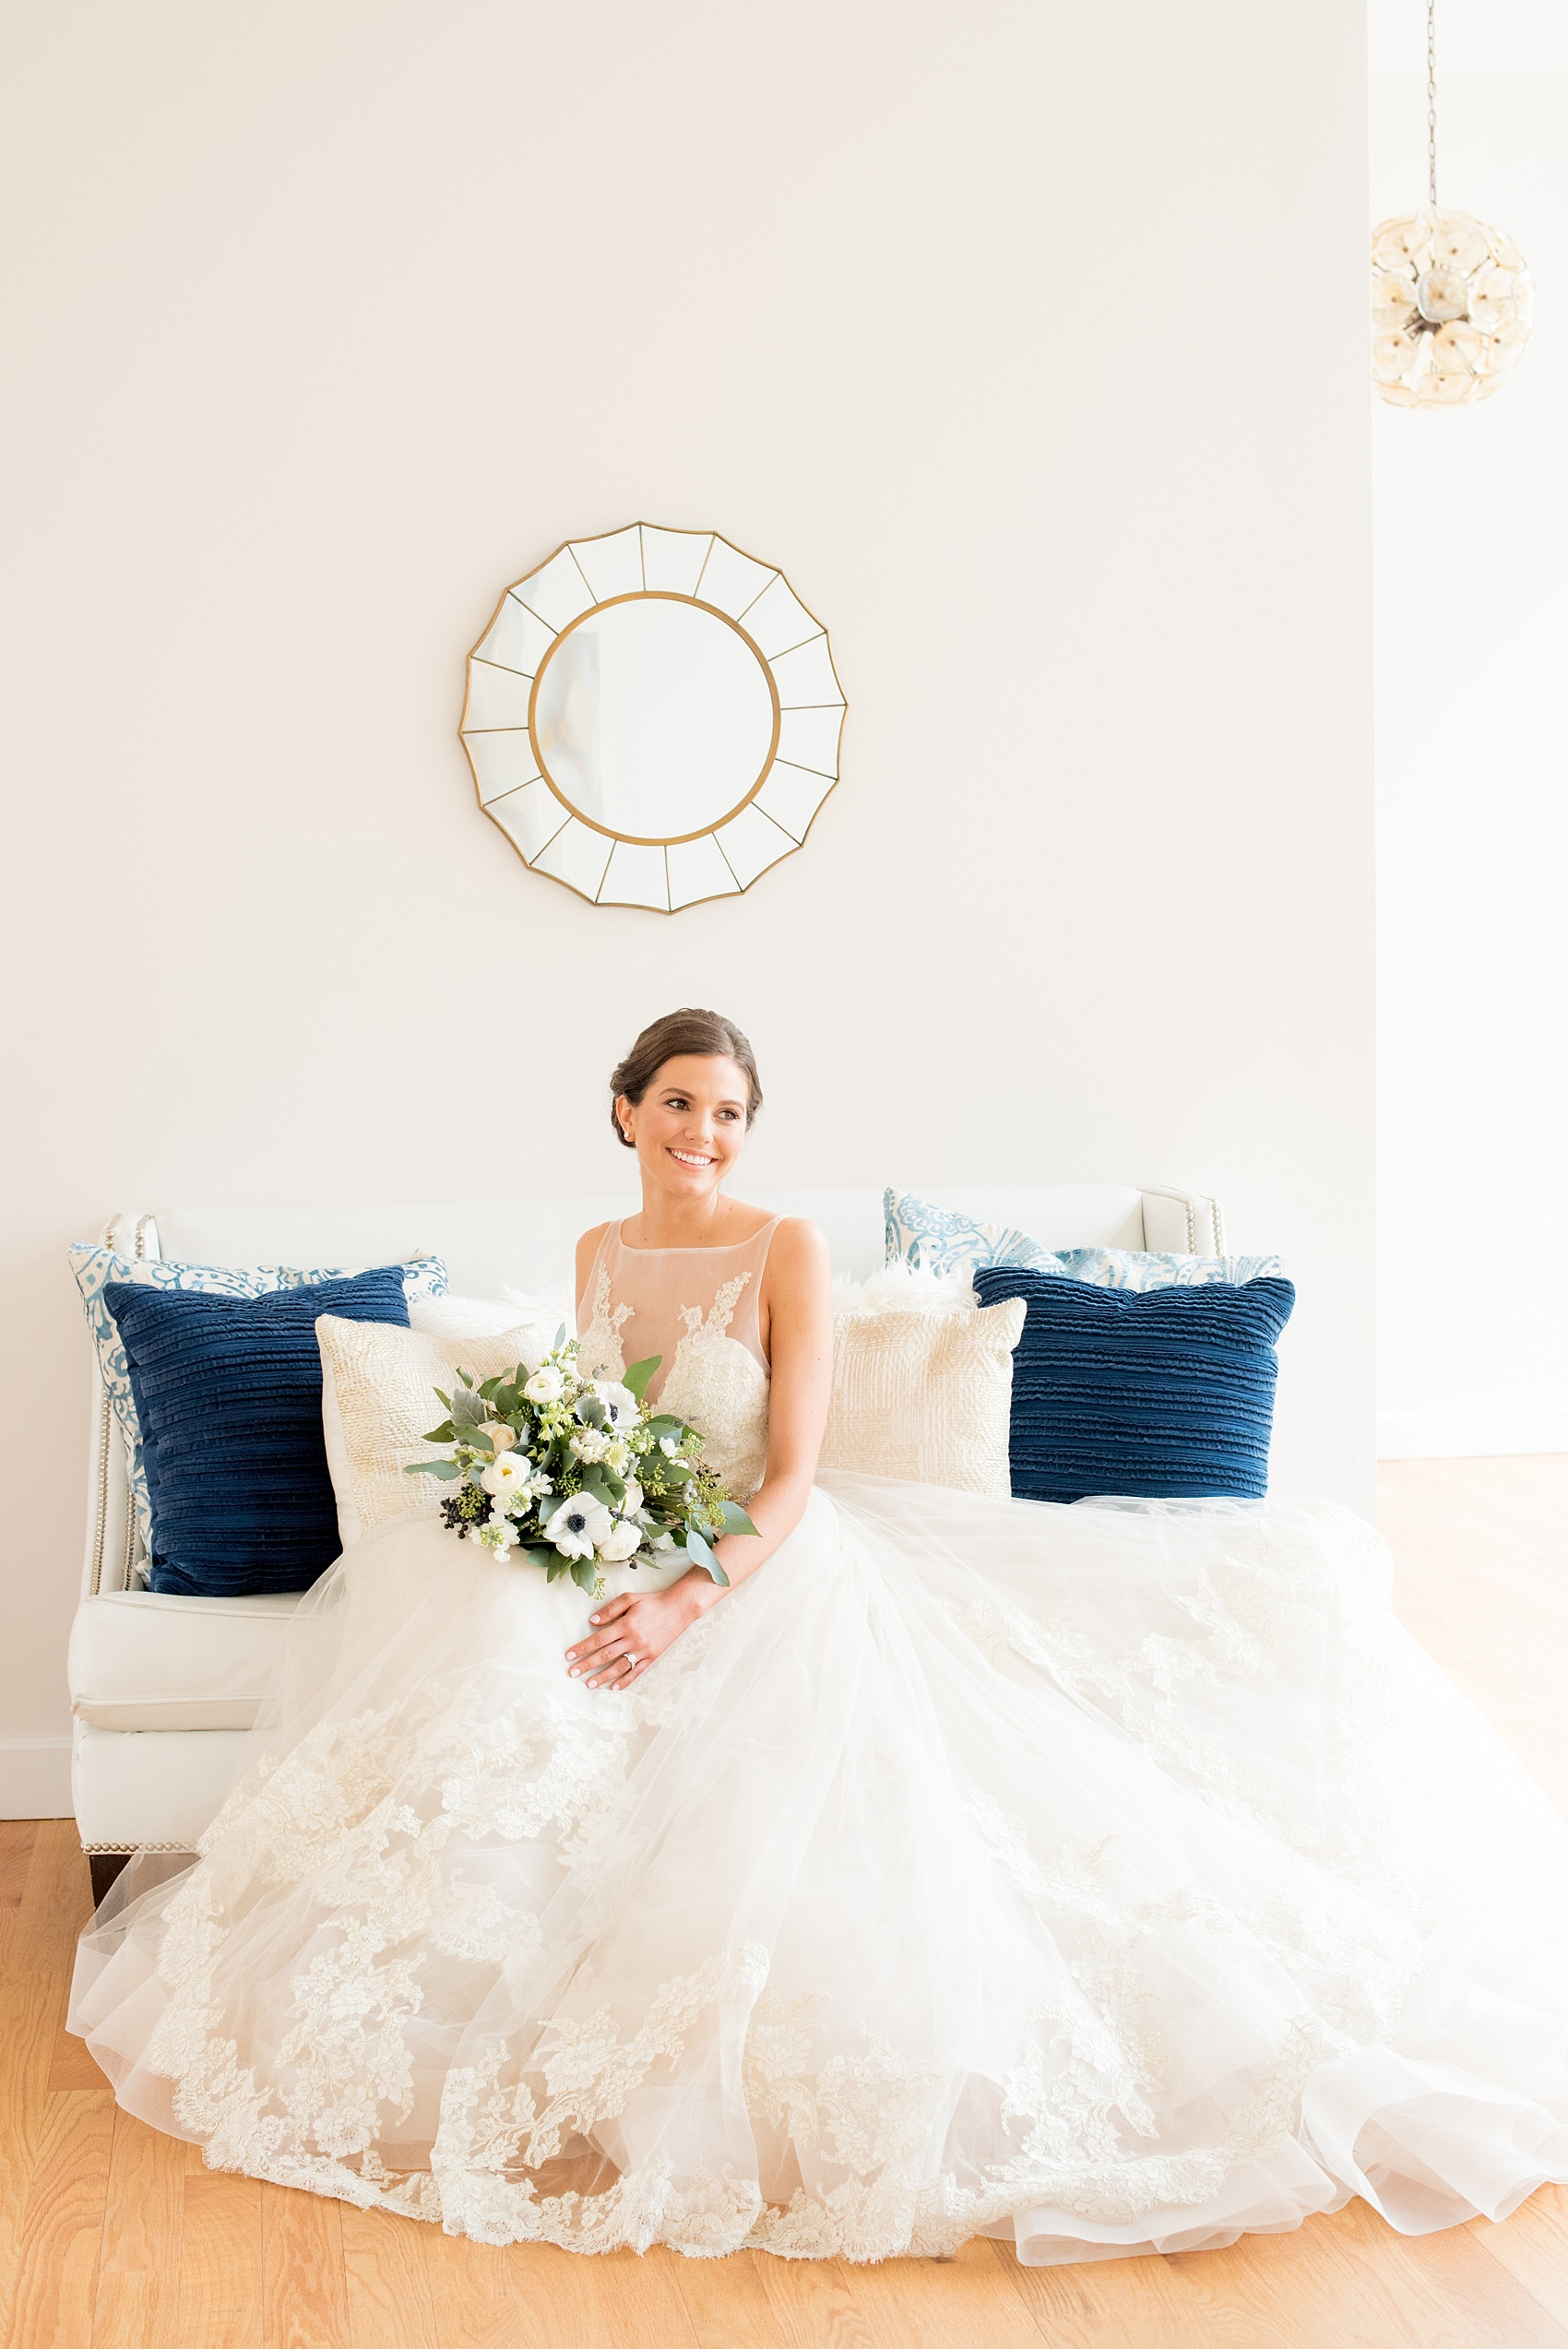 The Glass Box Raleigh wedding photos by Mikkel Paige Photography. Image of a bride in a white gown on a white couch with blue throw pillows.